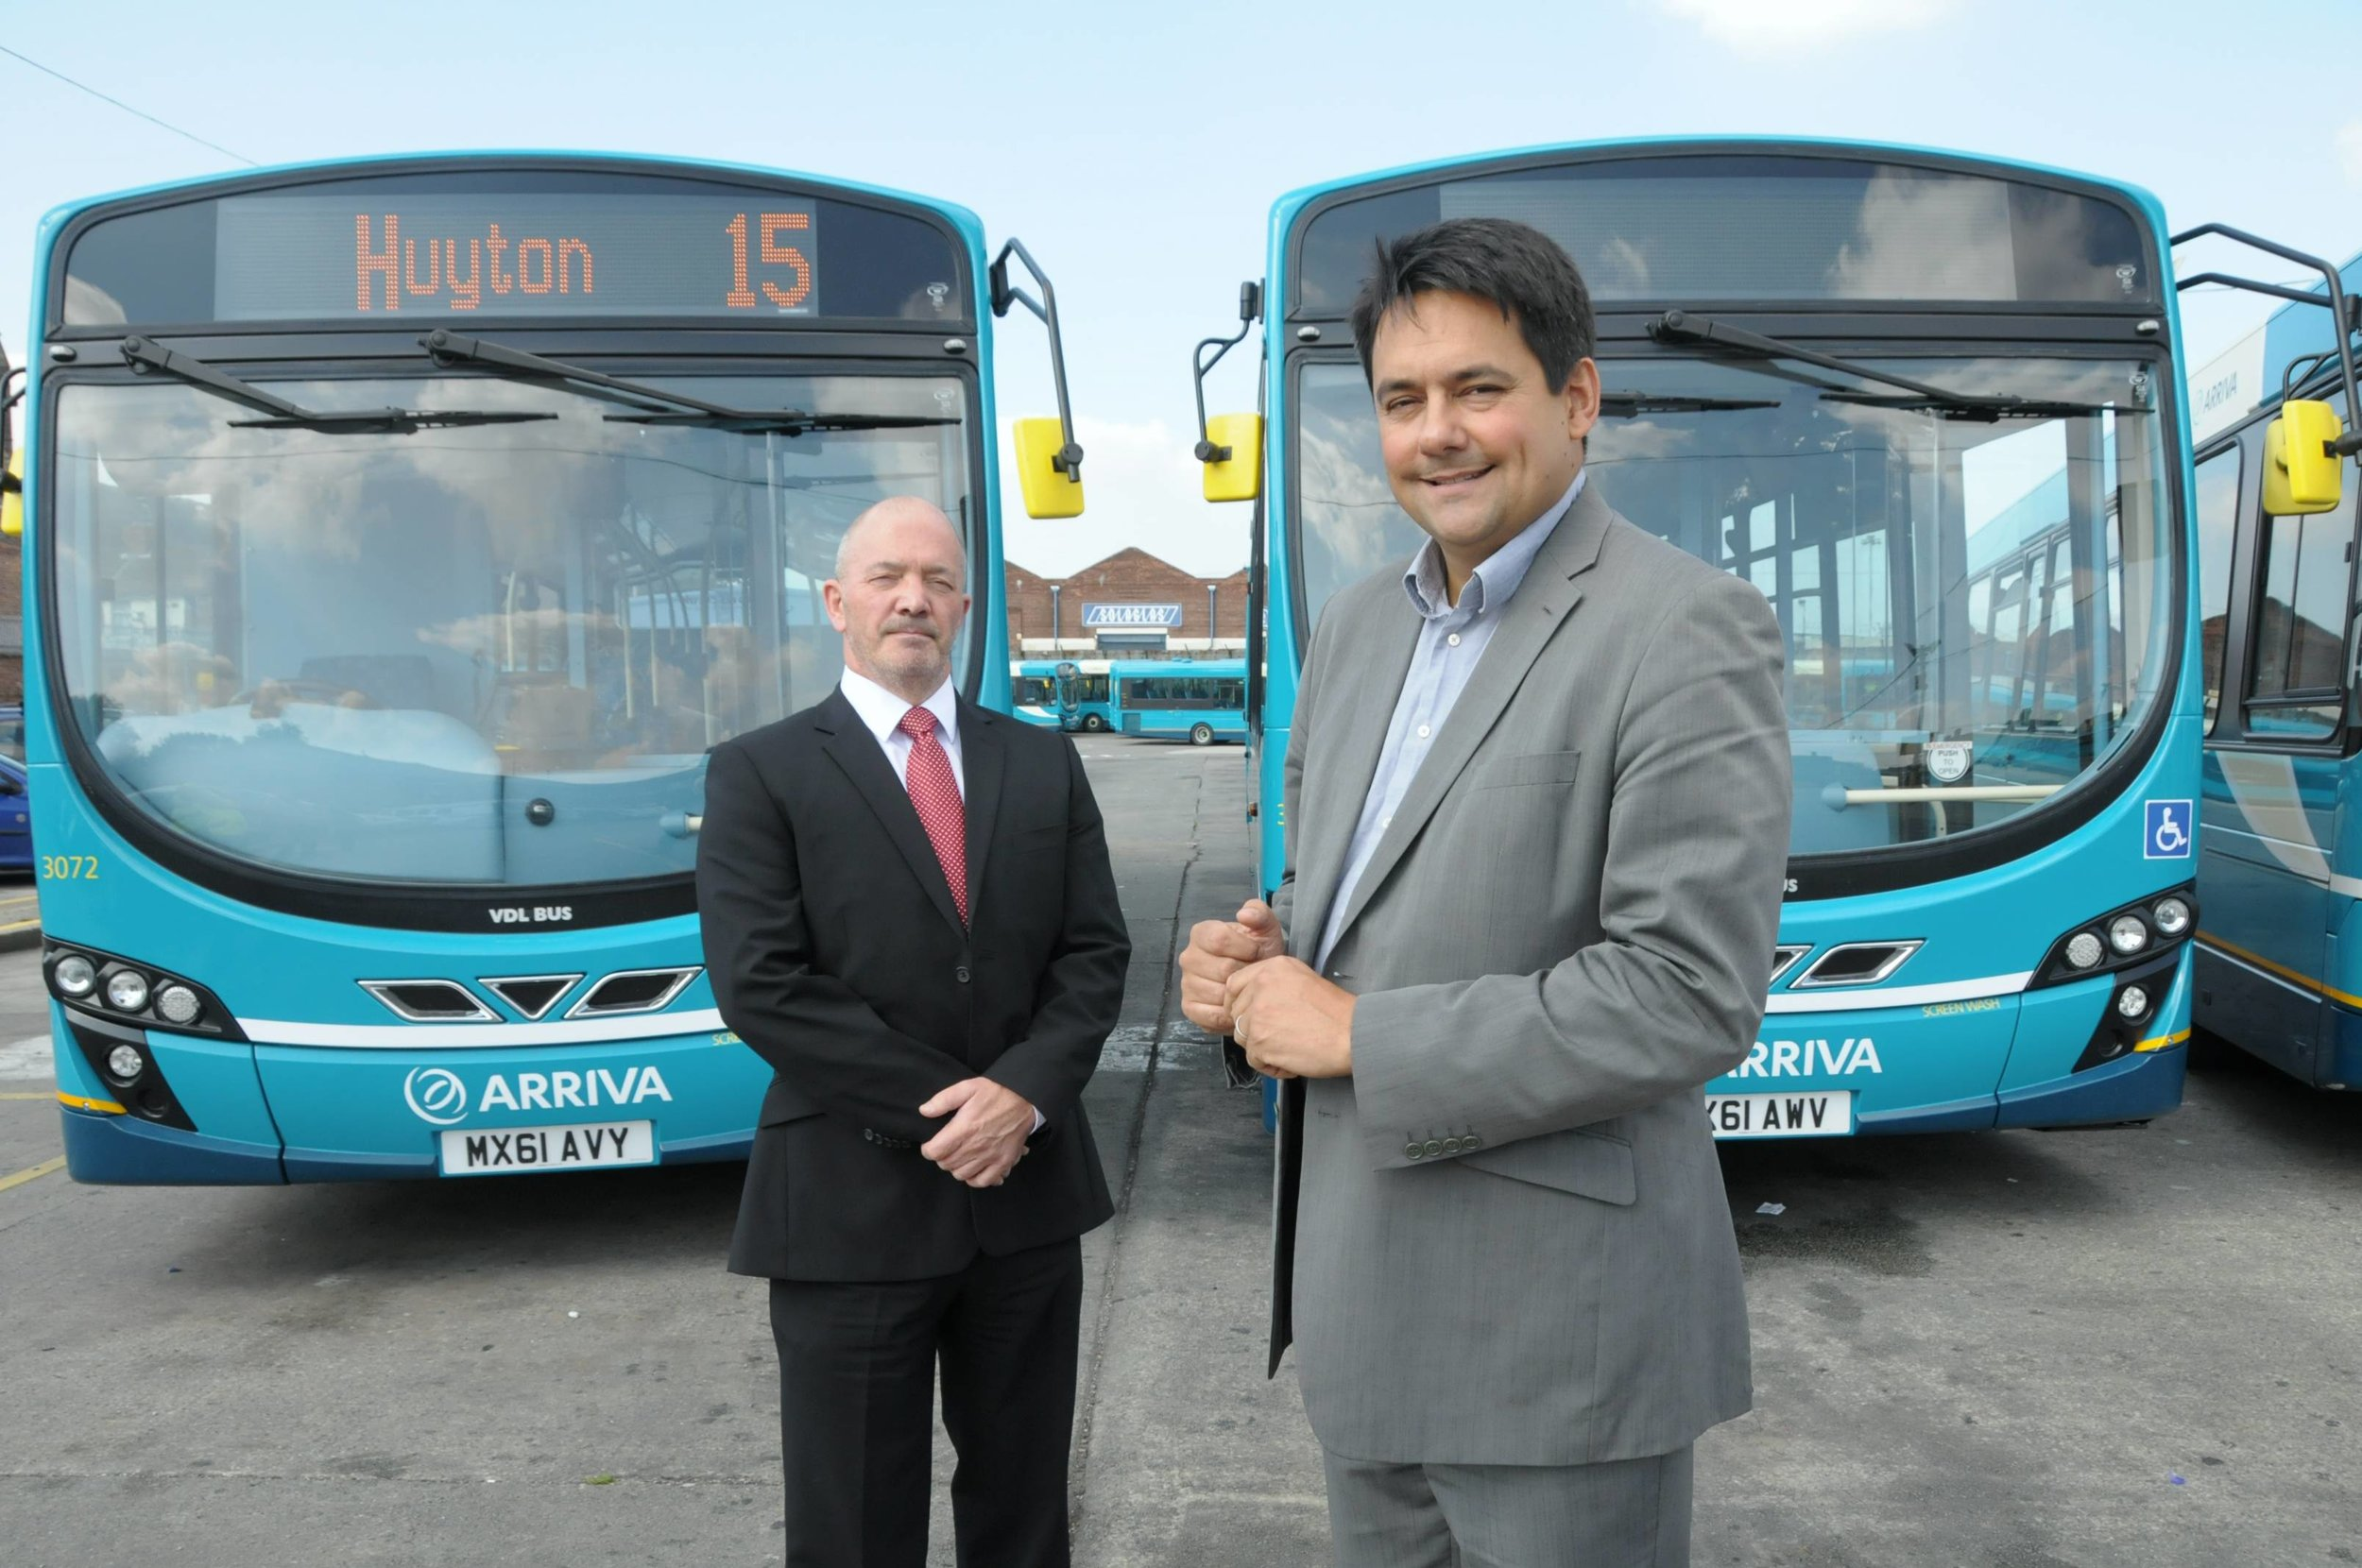 Stephen - bus - Huyton.jpg